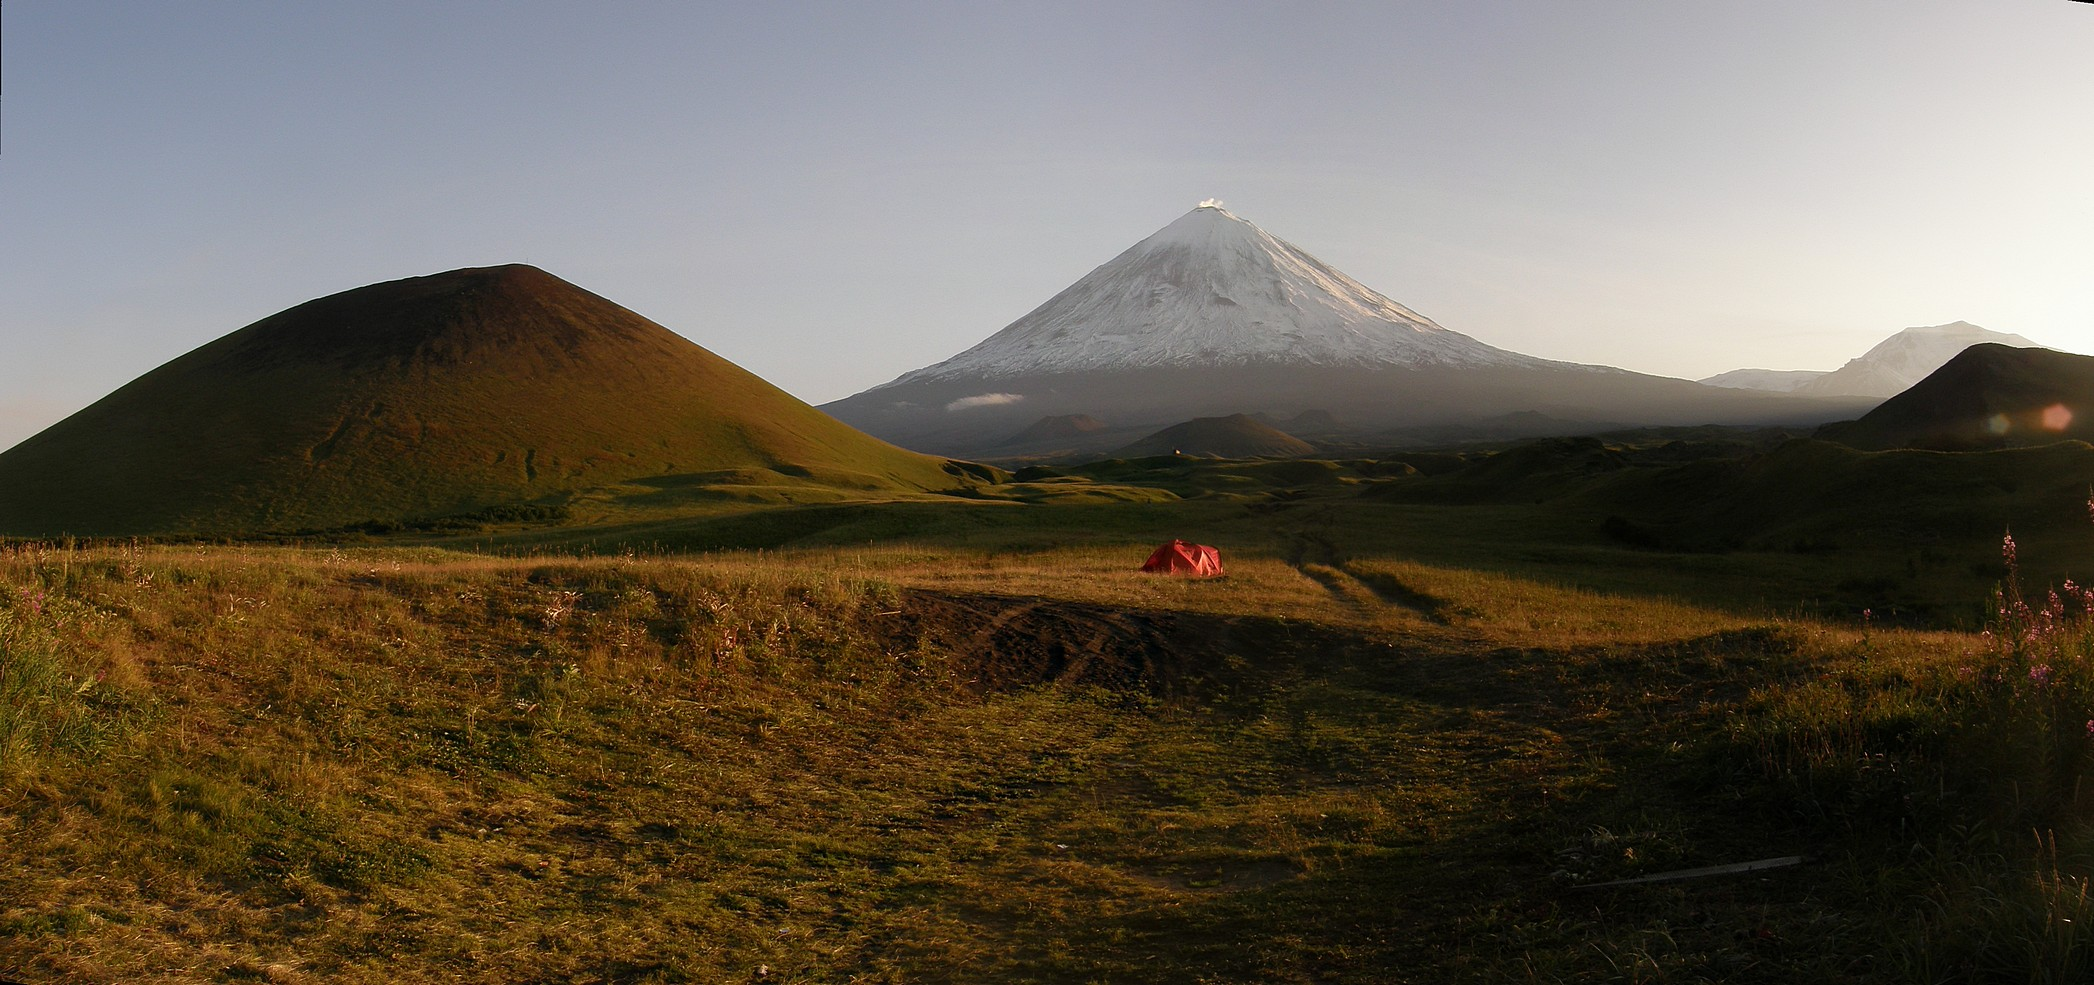 The foot of the Klyuchevskoy volcano and its 'children' -- monogenic cinder cones